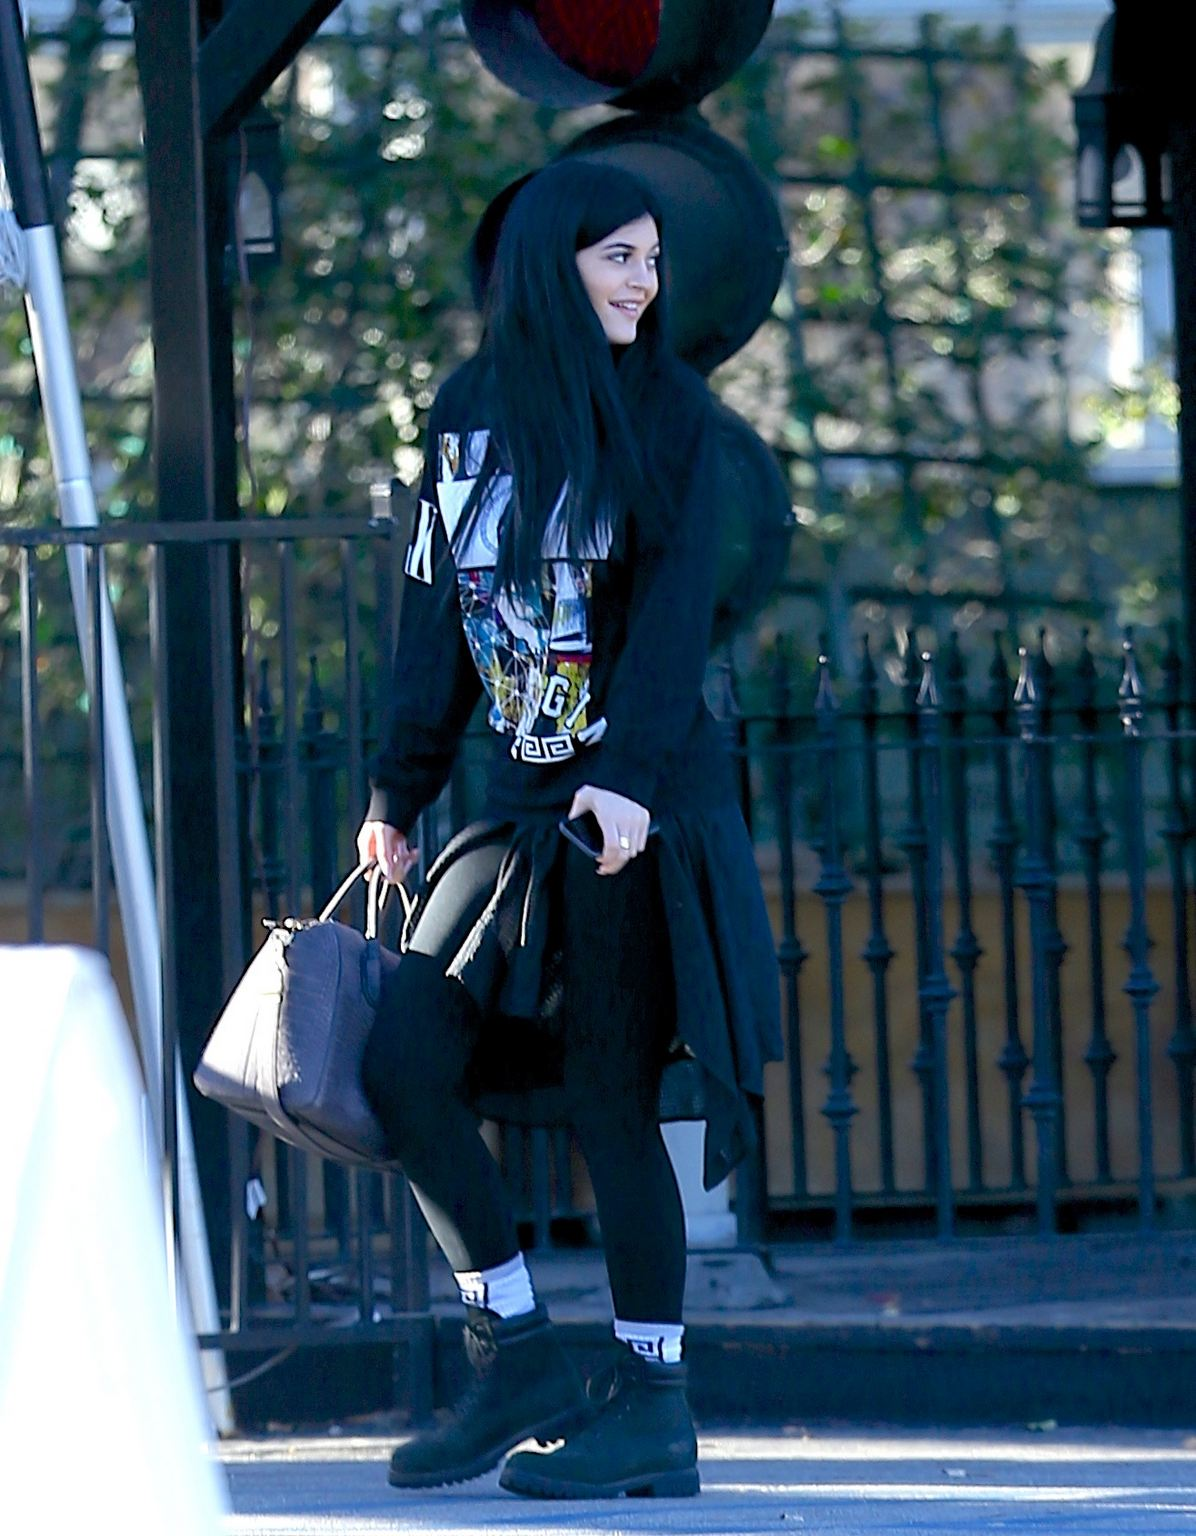 Kylie Jenner seen wearing Last Kings clothing while out to lunch with a friend on December 14, 2014.